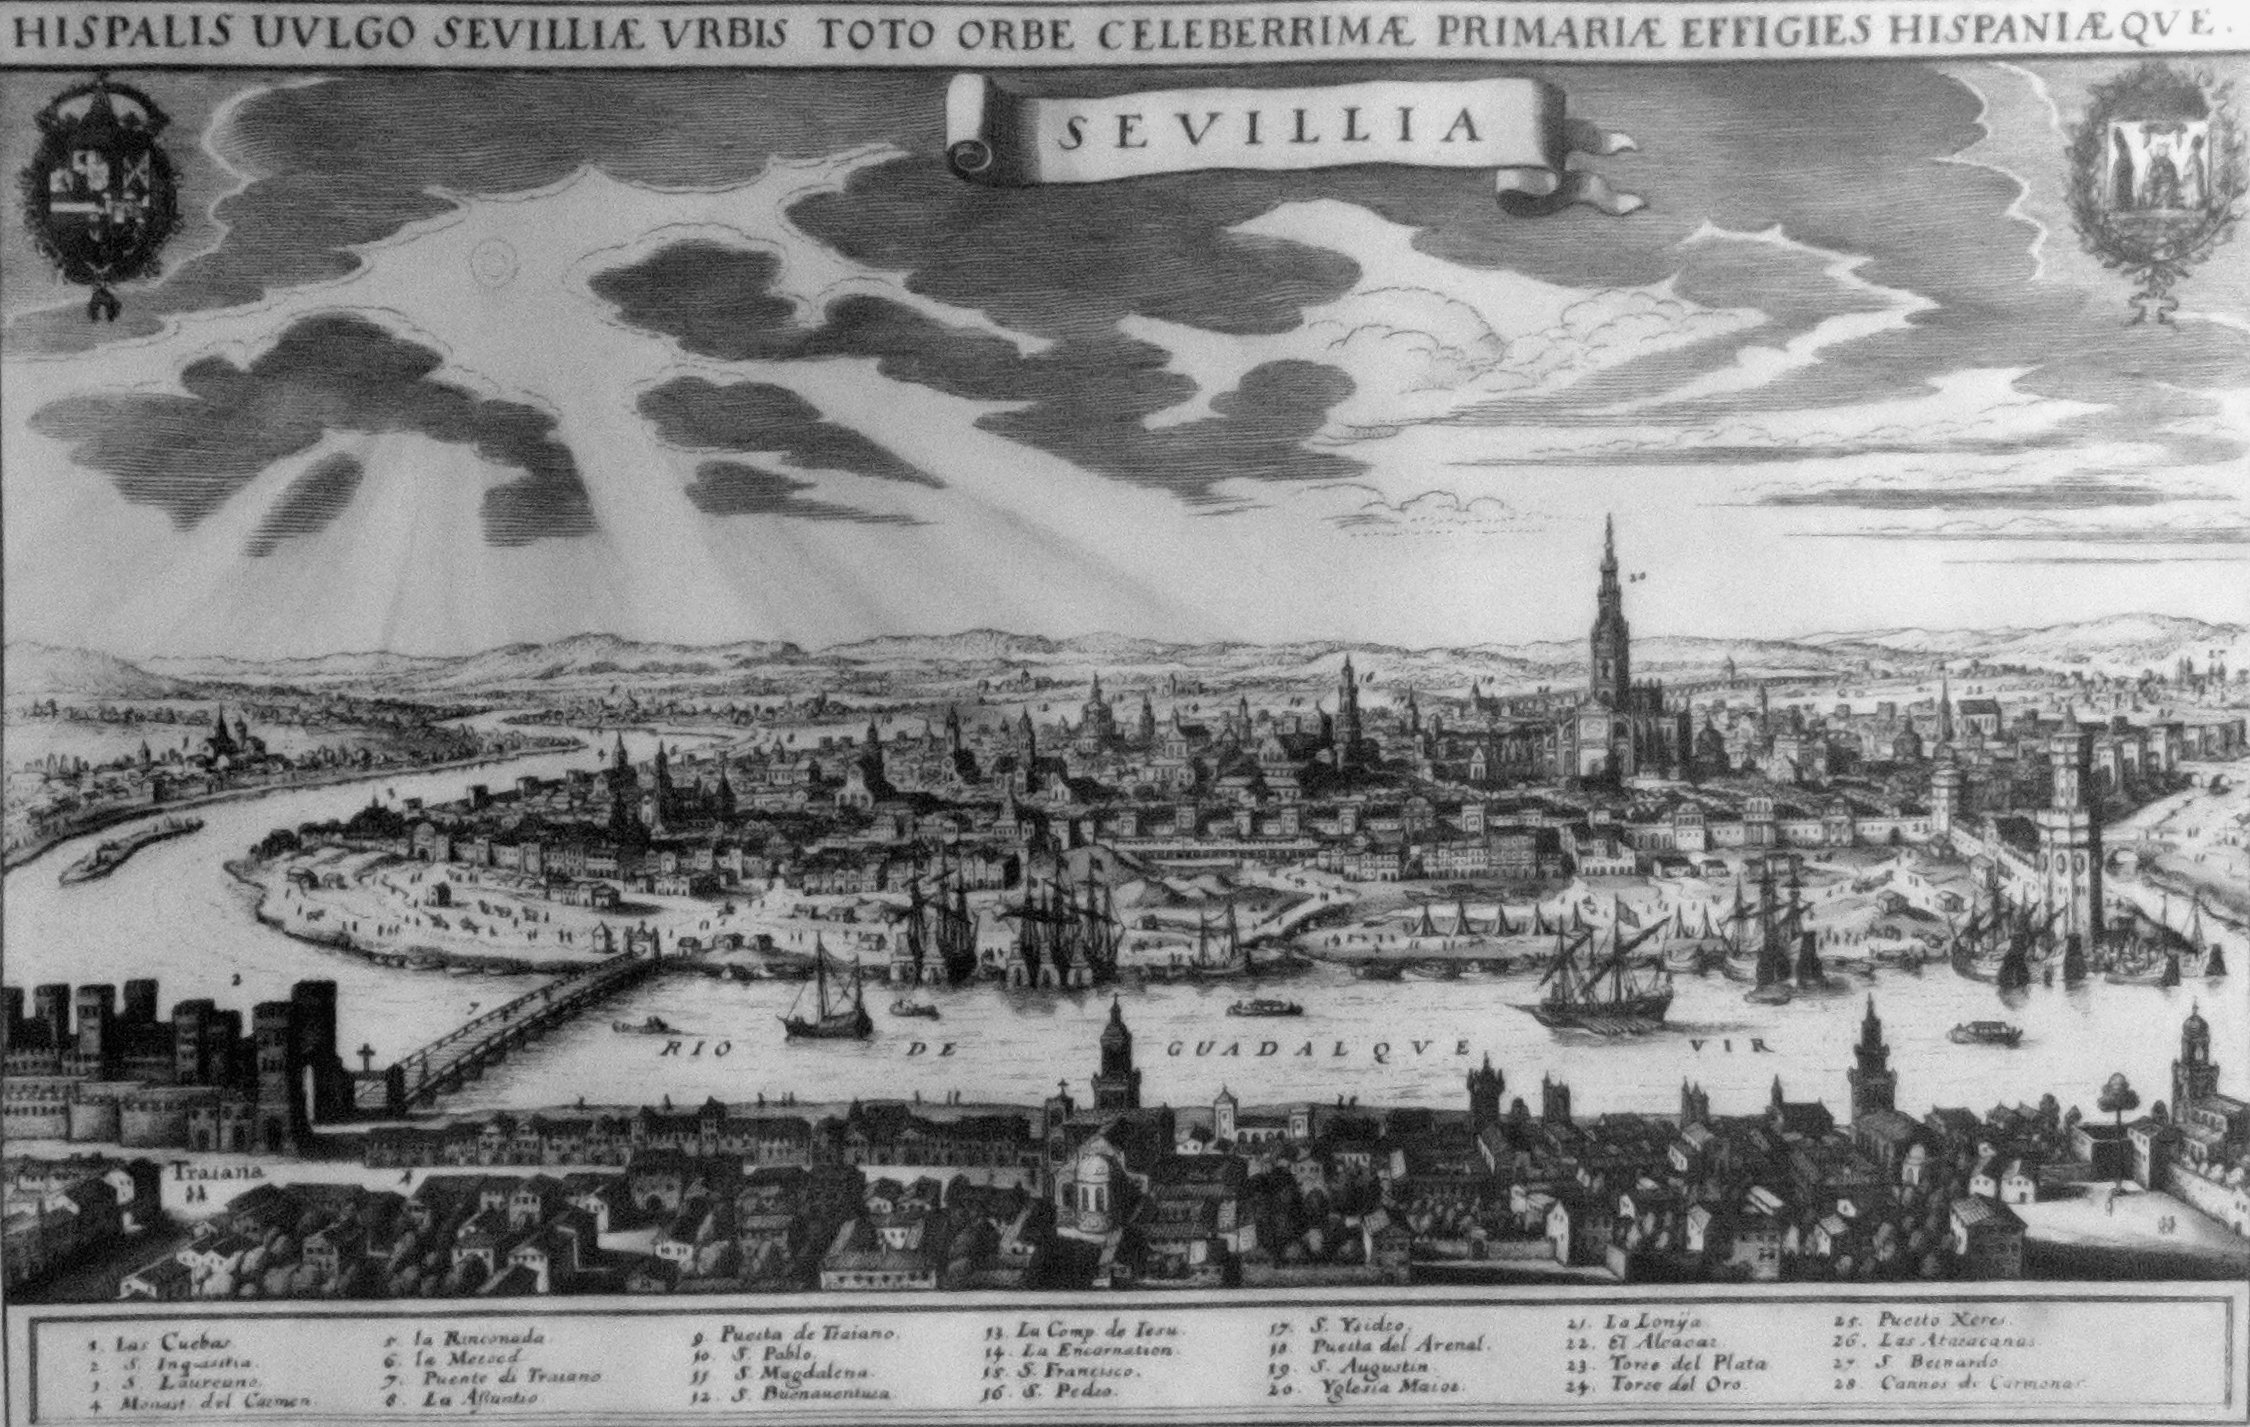 File:Map of Seville 1638 by Matheus Merian.jpg